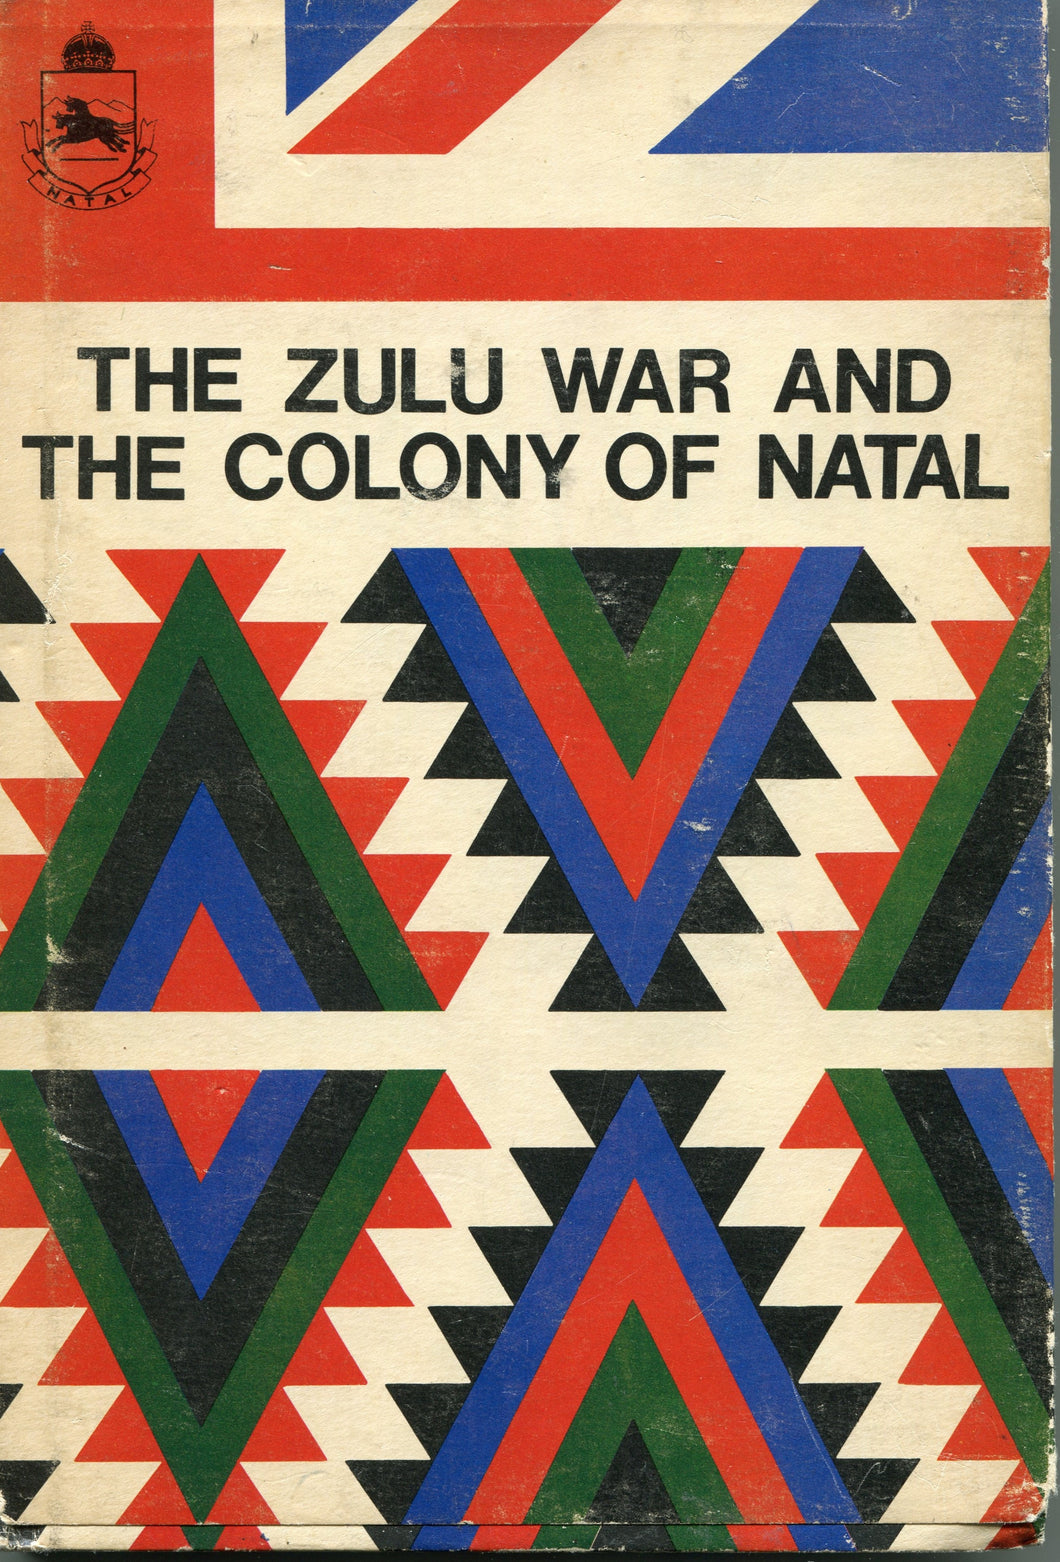 THE ZULU WAR AND THE COLONY OF NATAL edited by Ga.A. Chadwick and E.G. Hobson